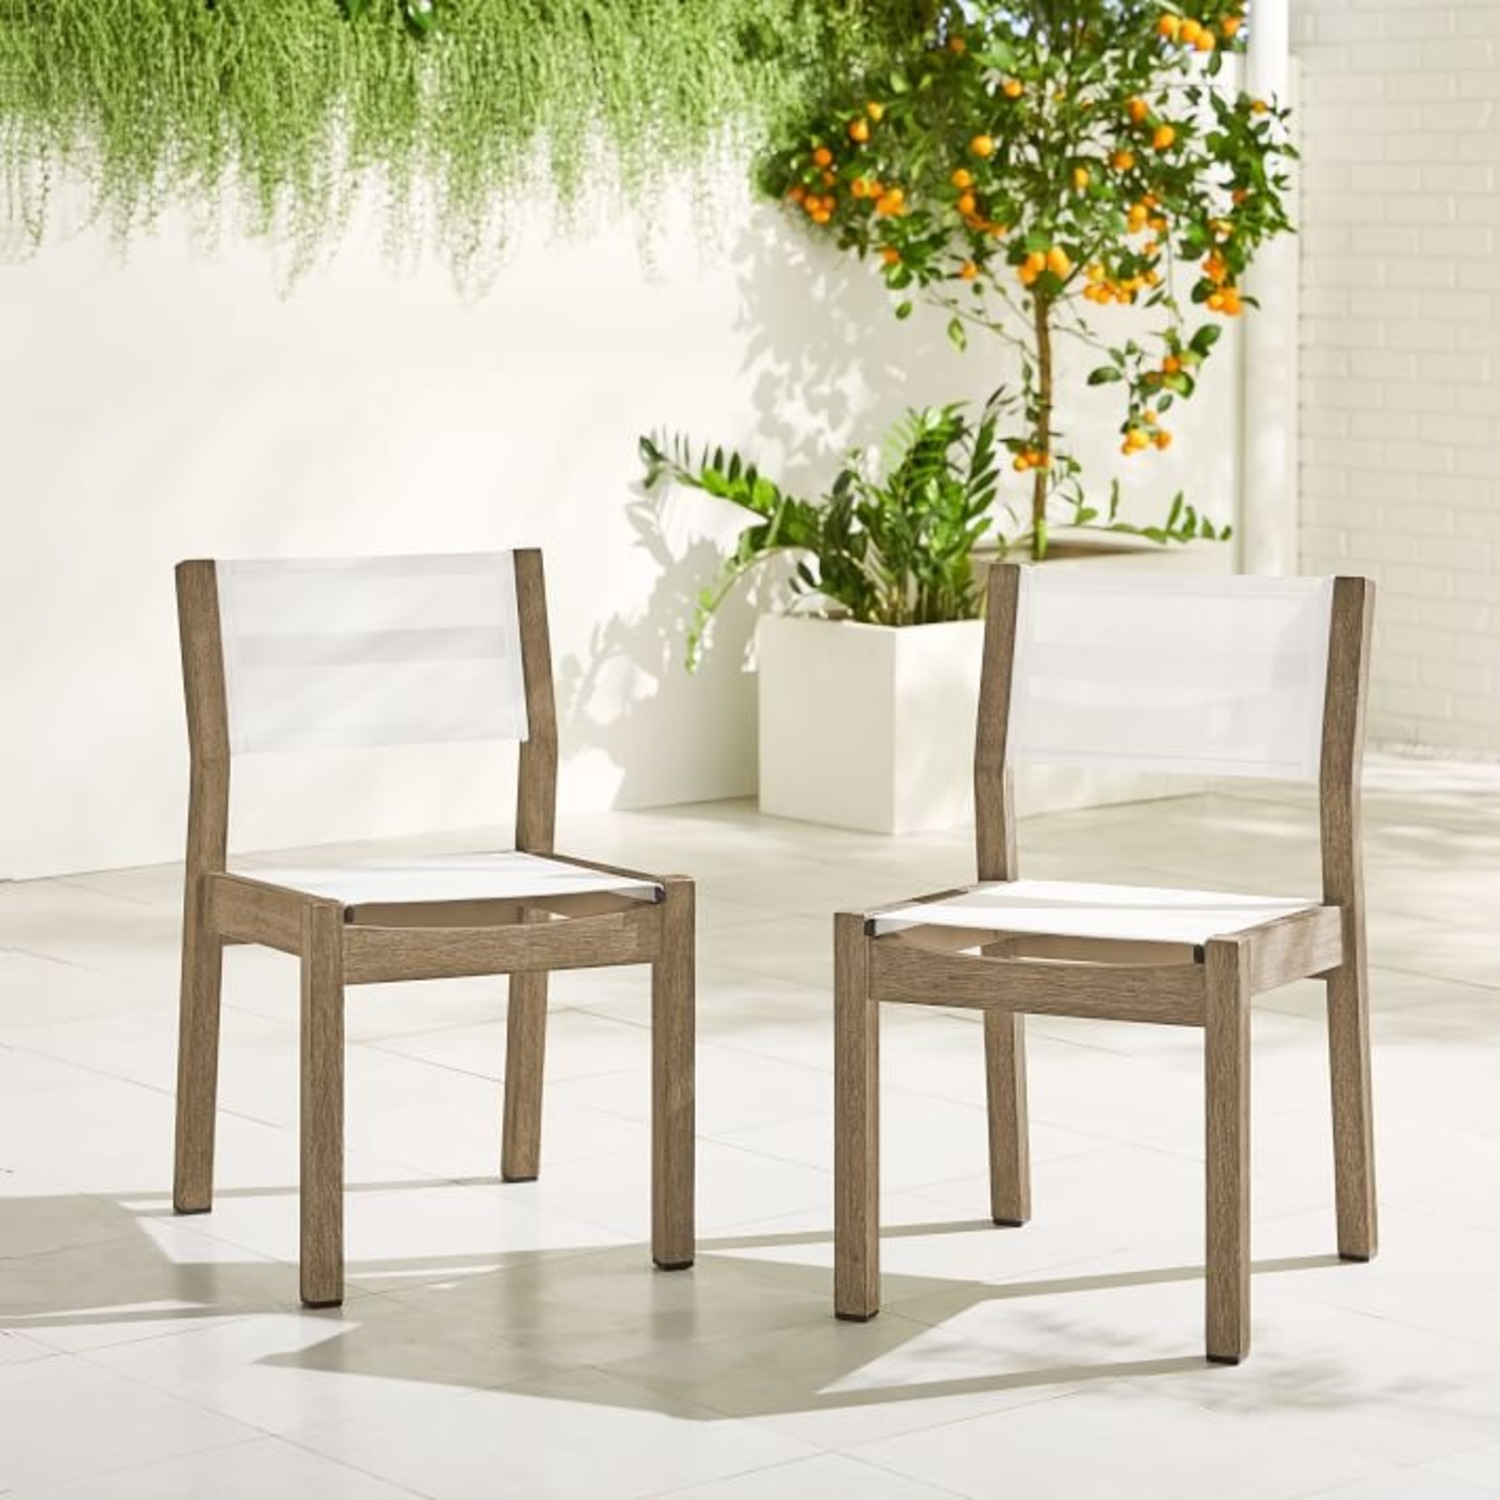 West Elm Portside Dining Chair (Set of 2) - image-1